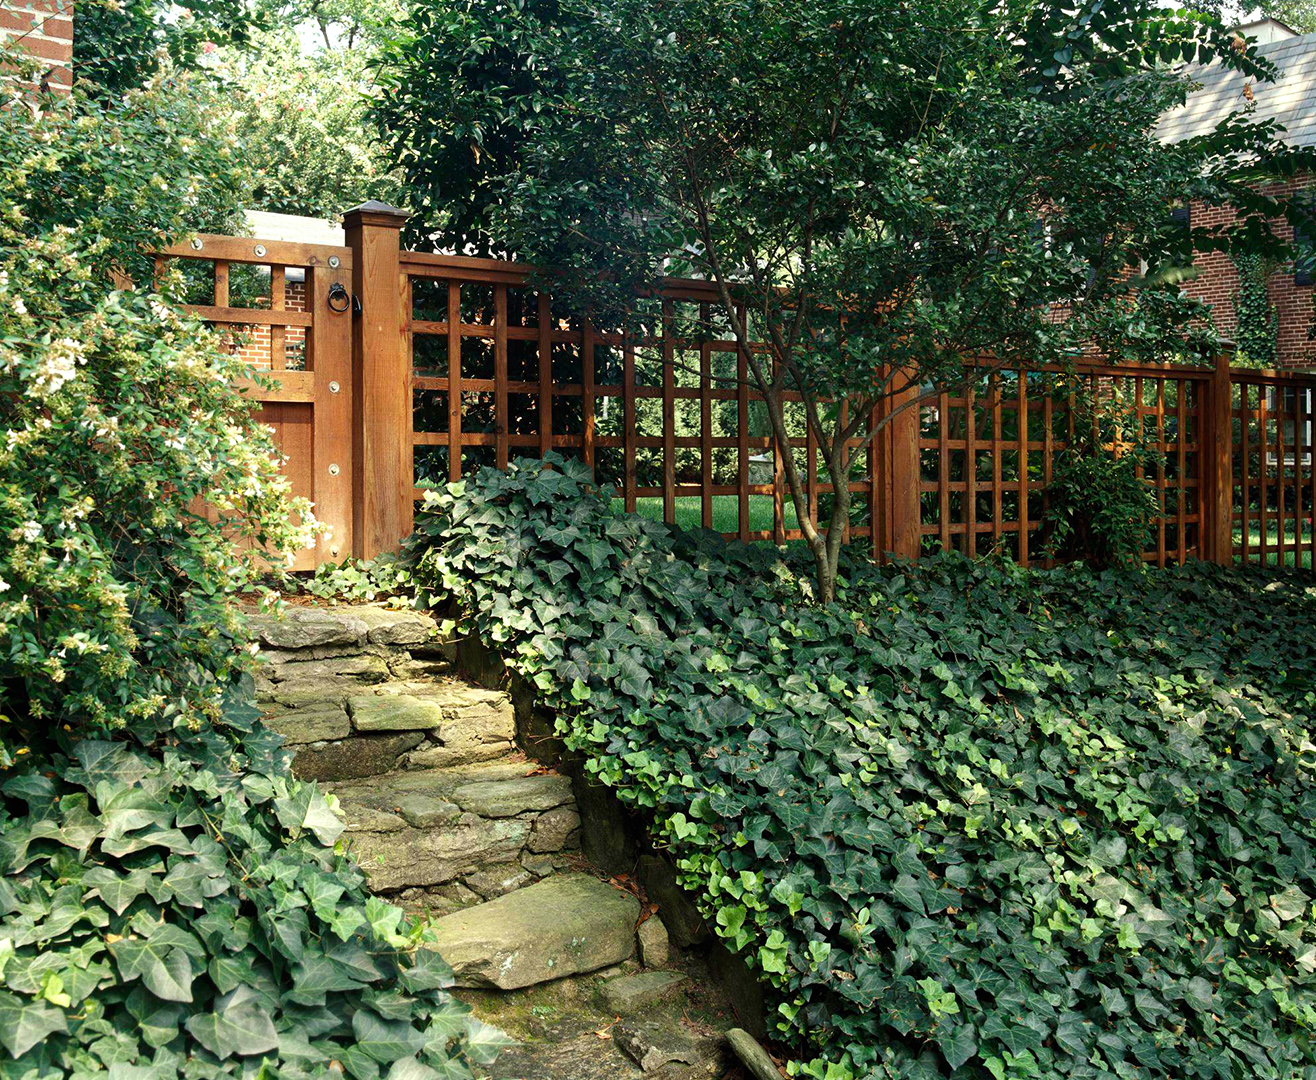 English Ivy near stone pathway and wooden fence